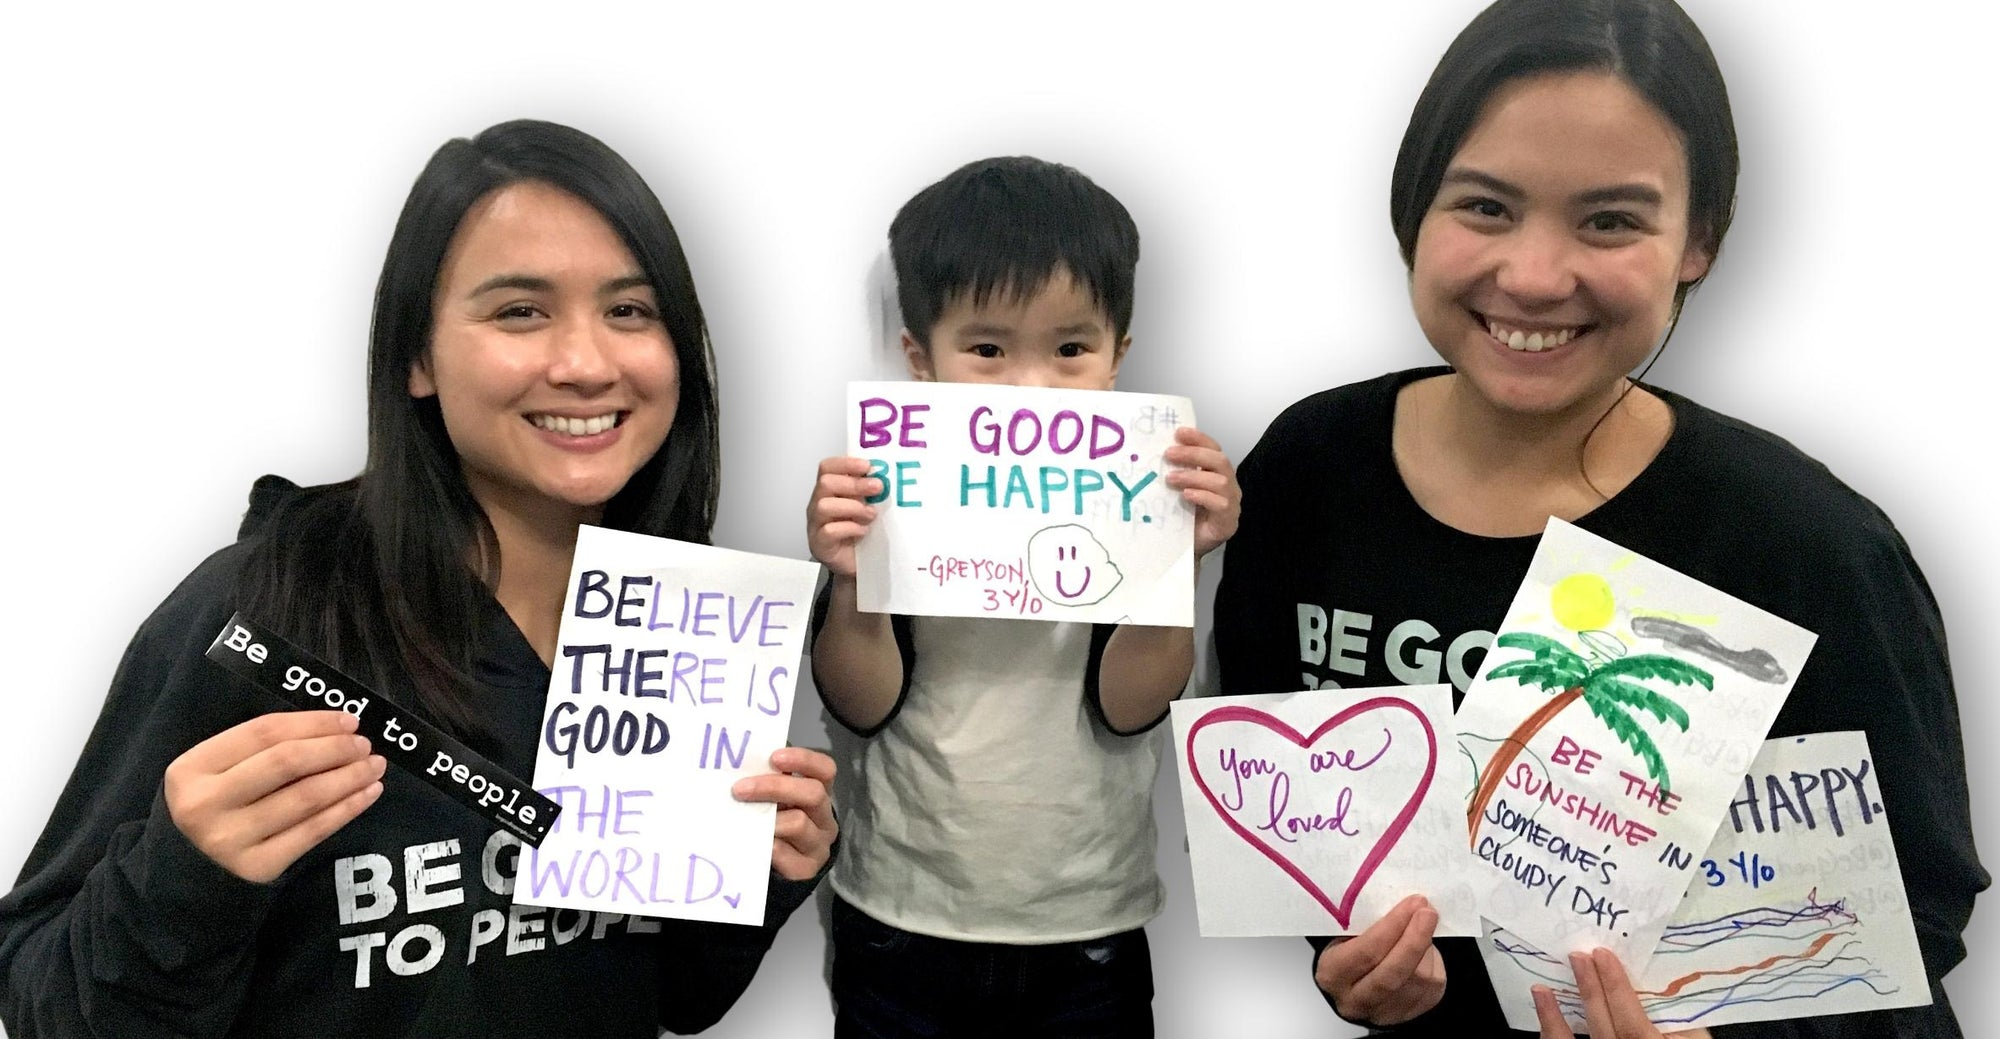 Two women and a little boy, all smiling and wearing Be Good to People t-shirts and holding homemade kindness signs before they go put them on people's car windshields for Random Acts of Kindness Week